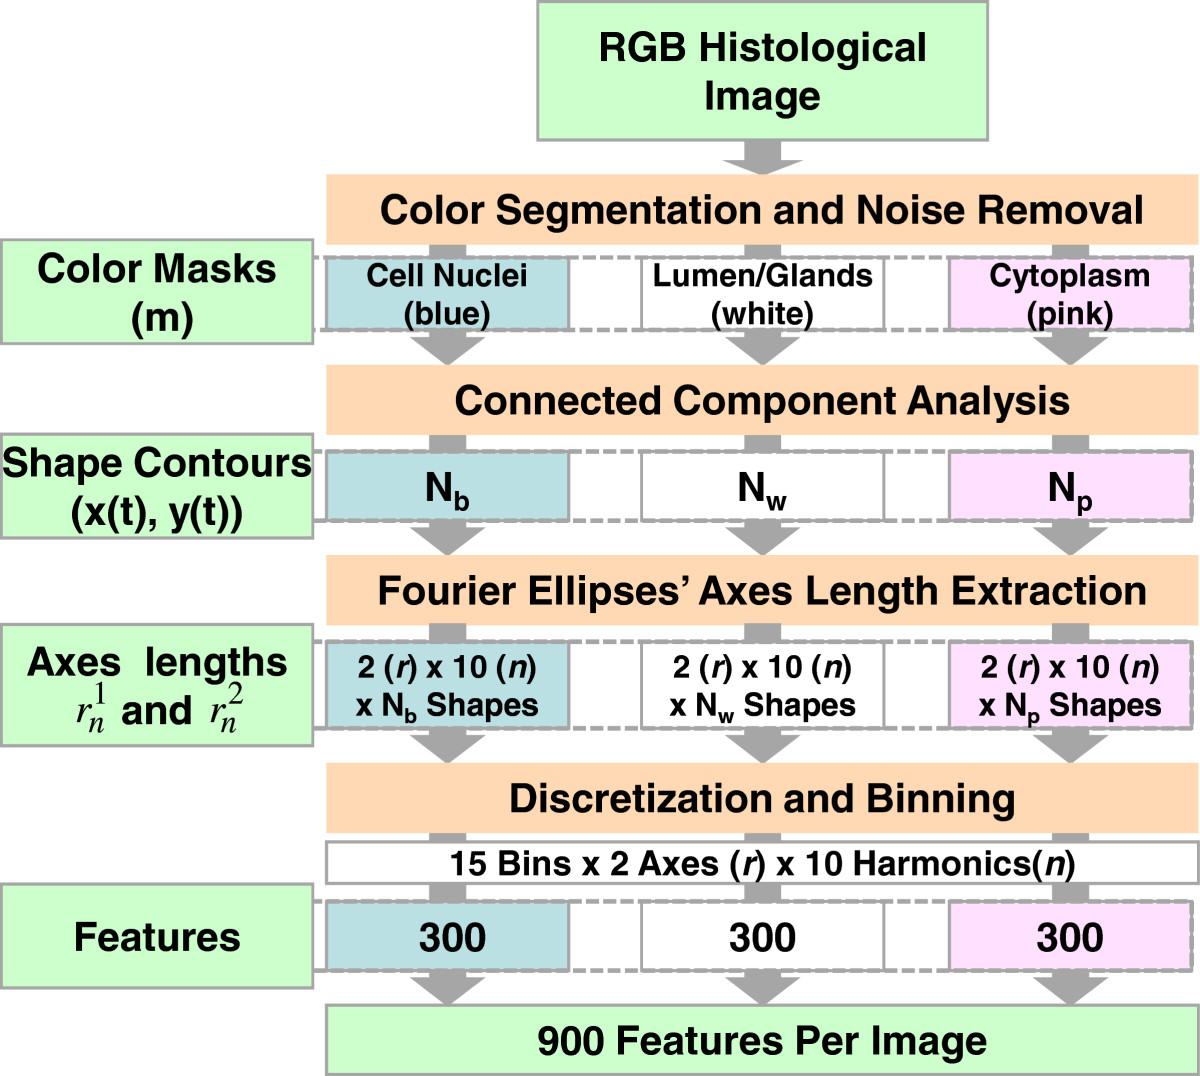 https://static-content.springer.com/image/art%3A10.1186%2F1471-2342-13-9/MediaObjects/12880_2012_Article_173_Fig7_HTML.jpg